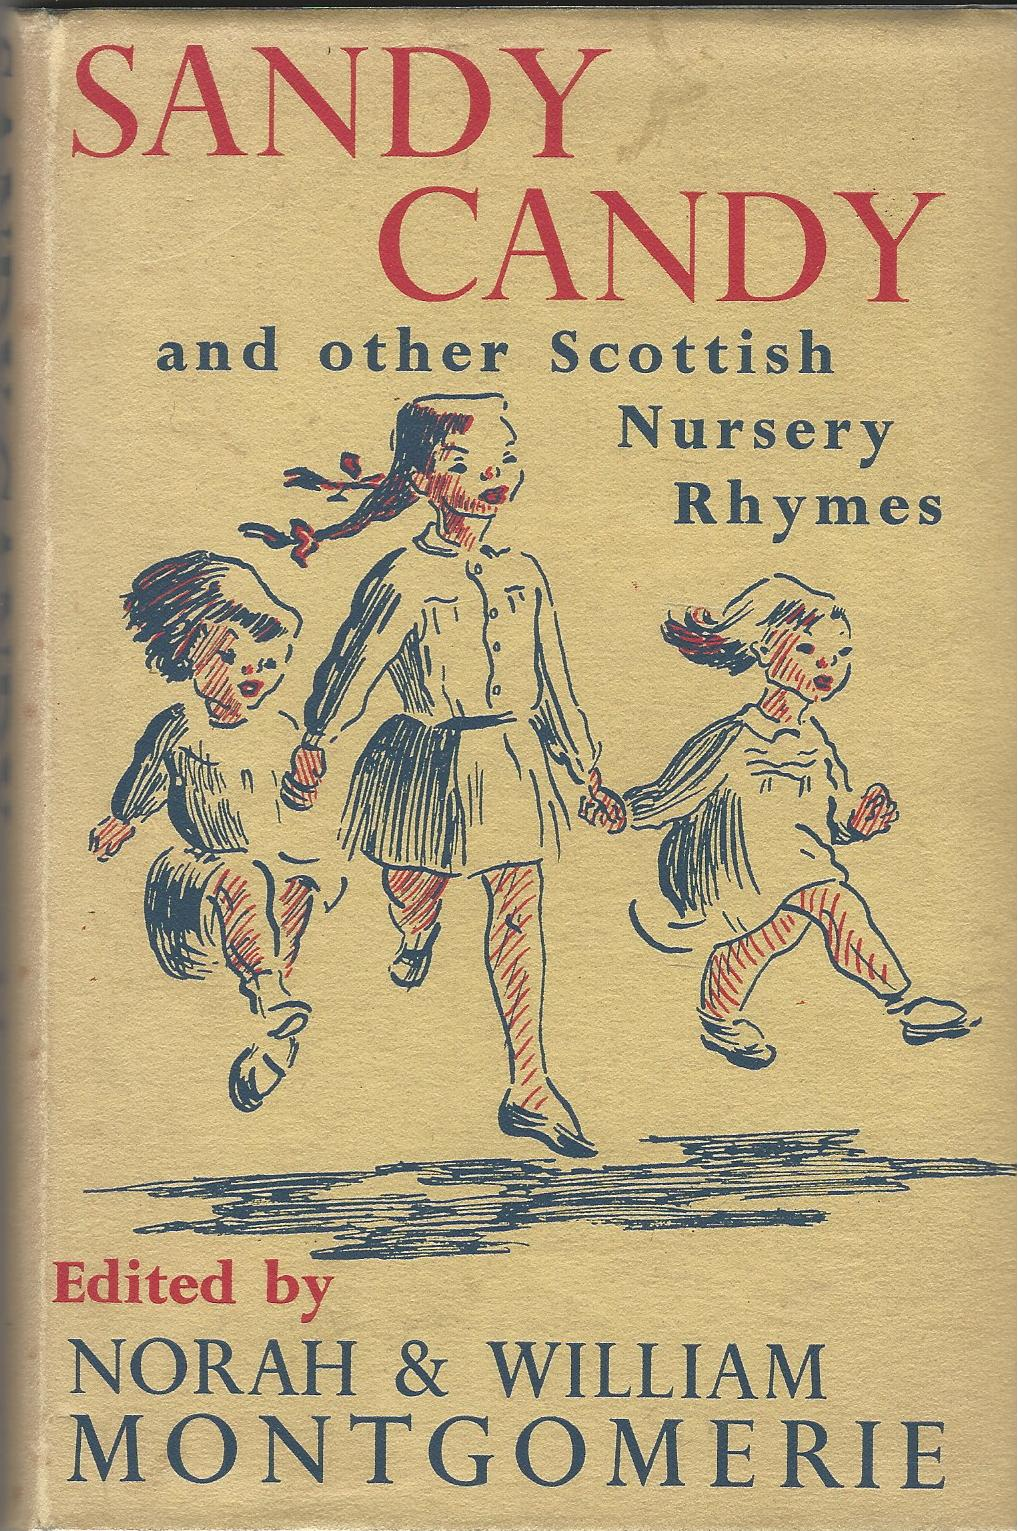 Image for Sandy Candy and other Scottish Nursery Rhymes